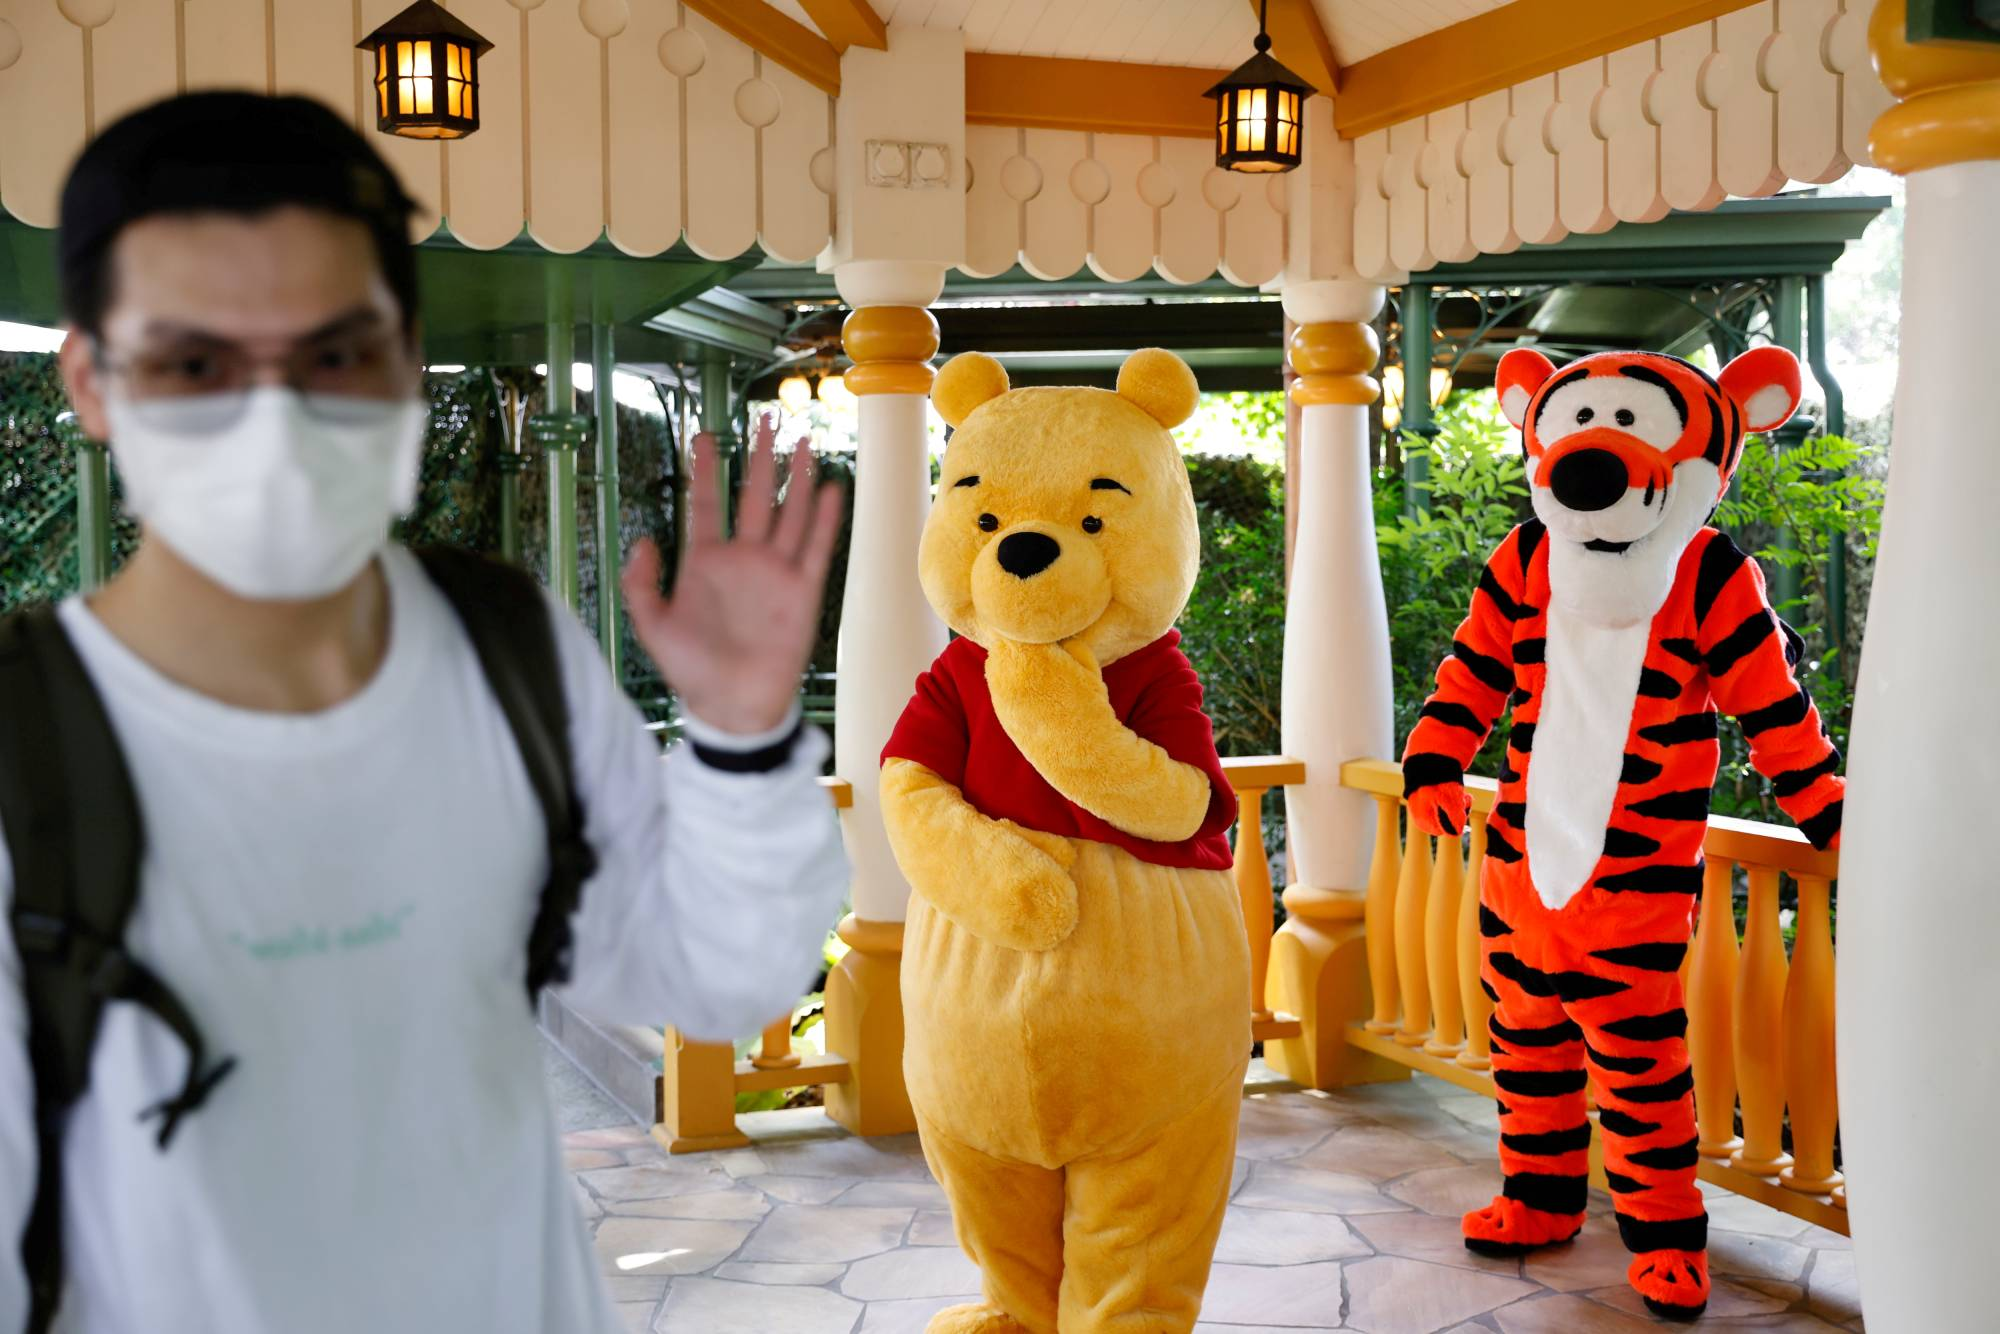 A visitor greets Disney characters during the reopening of Disneyland to the public, after a second closure due to COVID-19, in Hong Kong on Sept. 25. | REUTERS